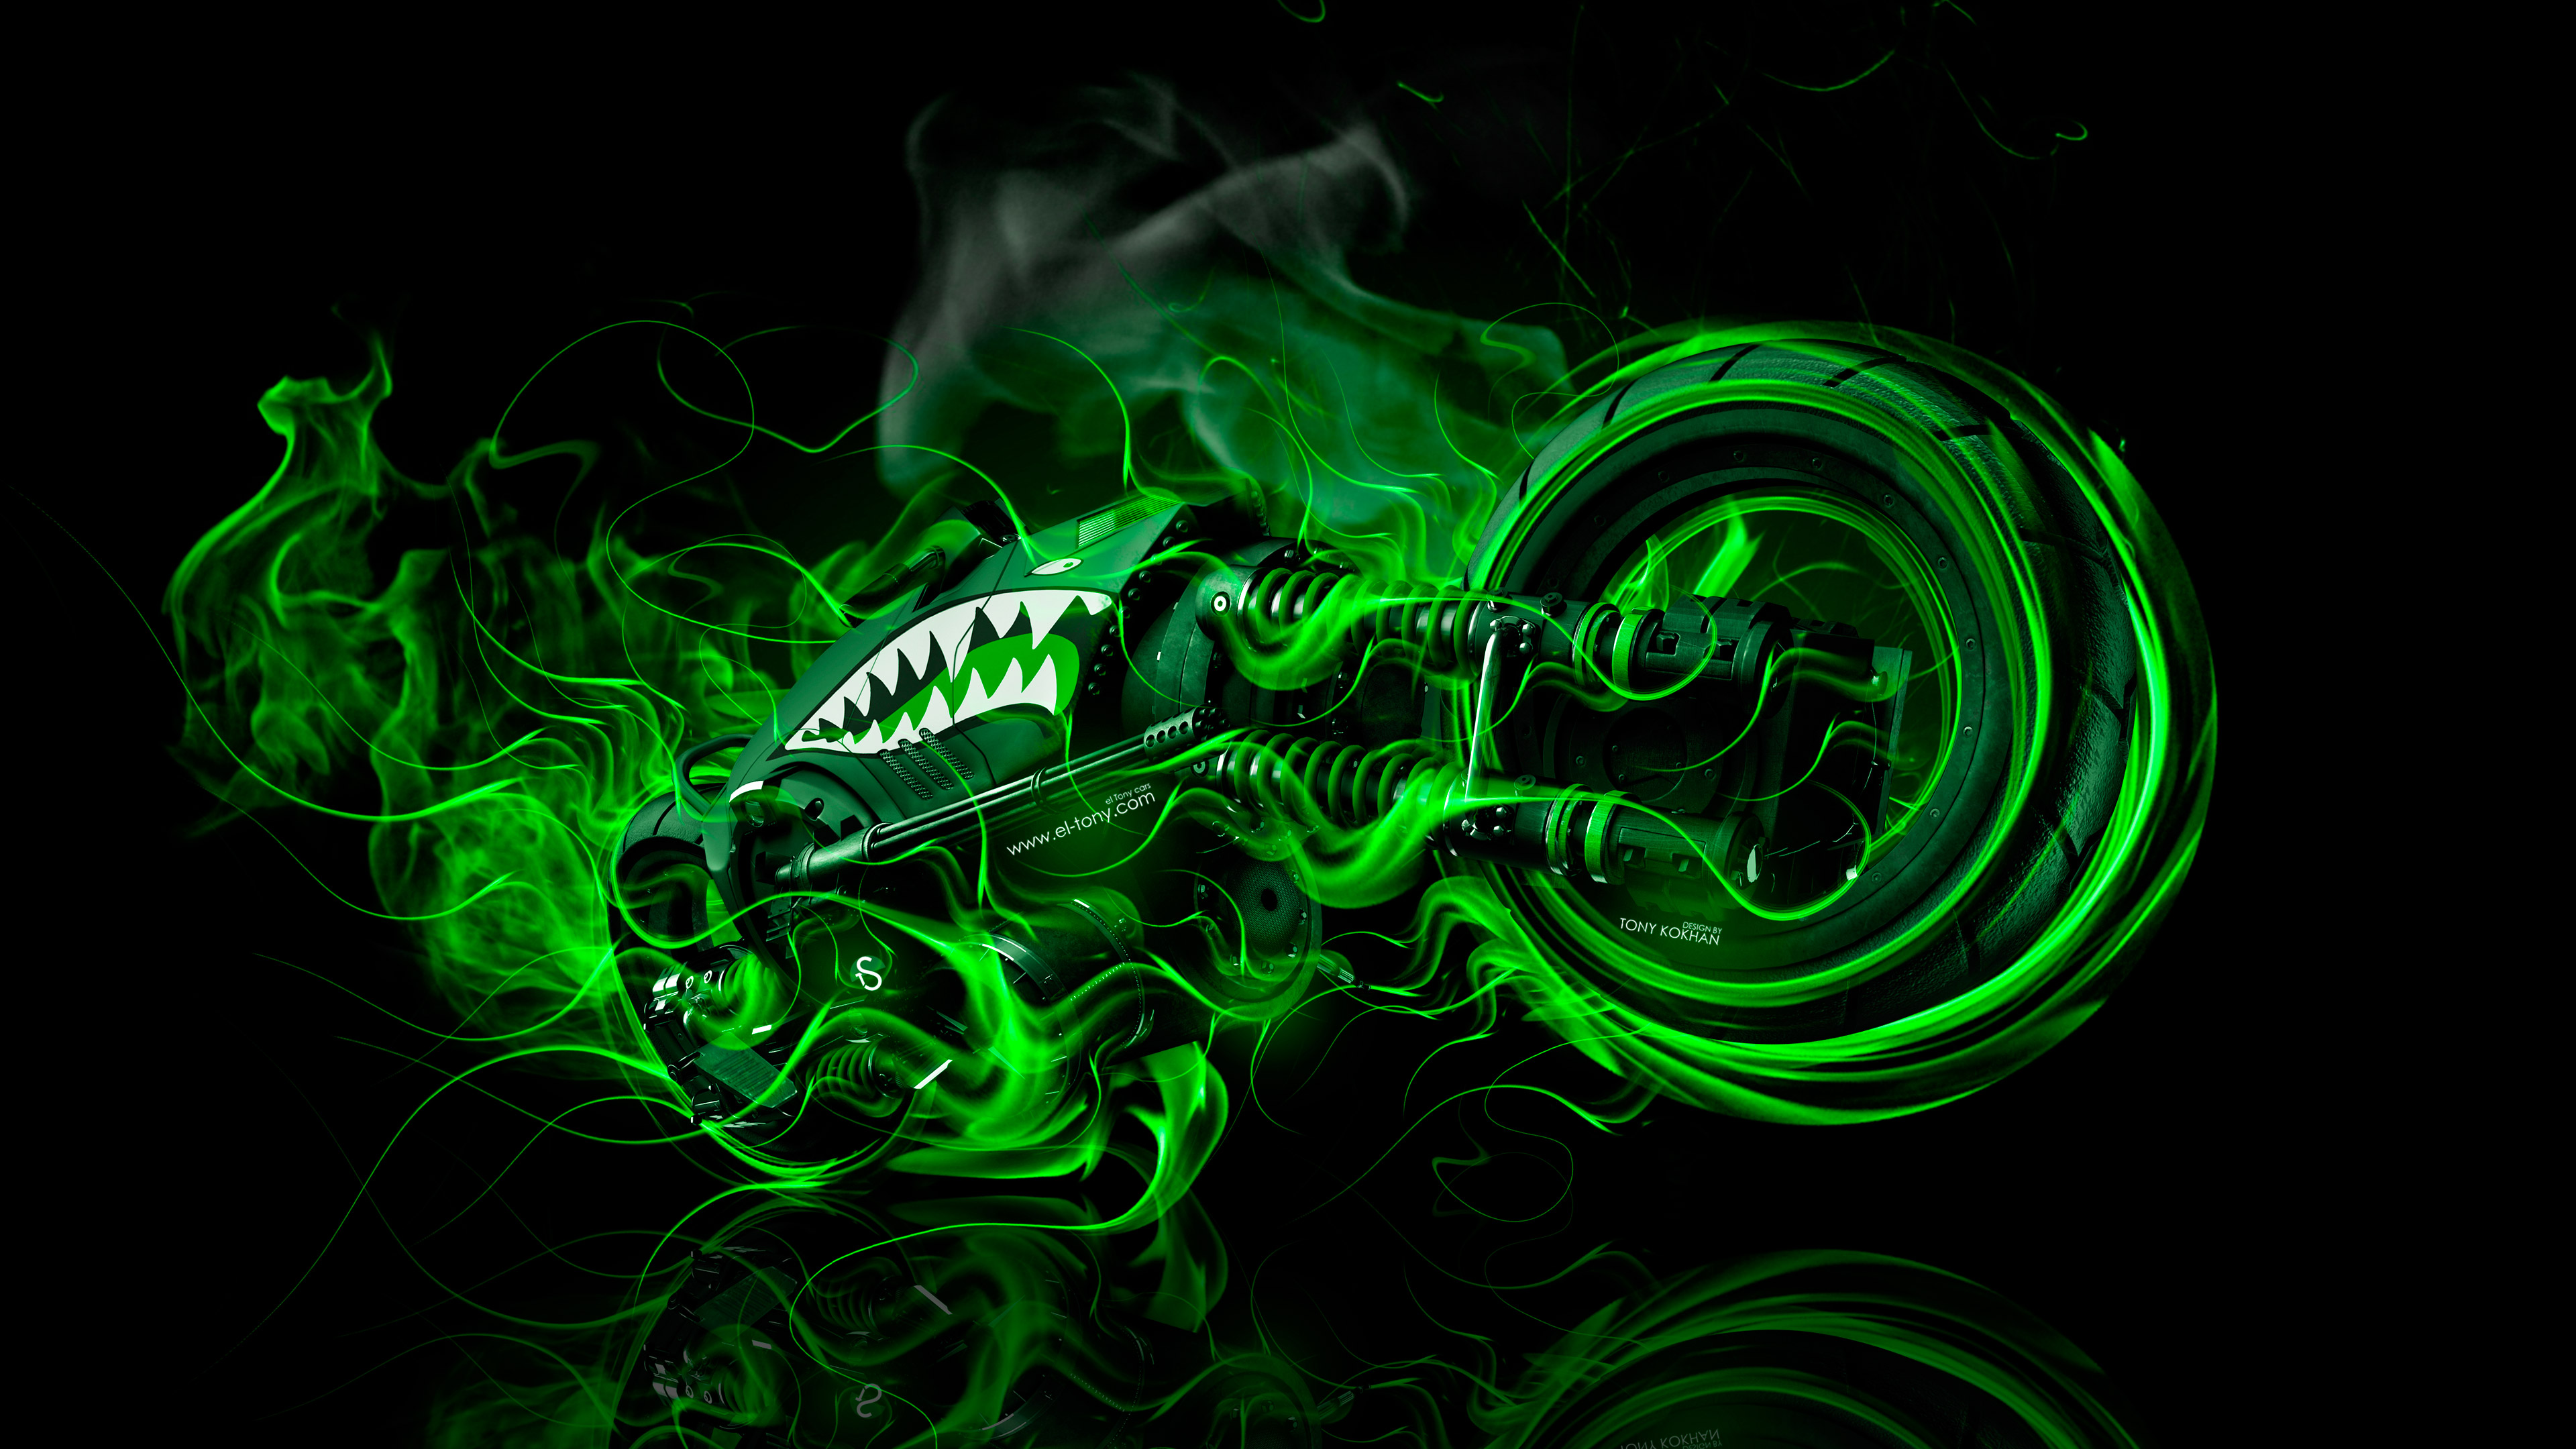 Moto Gun Super Fire Flame Abstract Bike 2016 Wallpapers 4K ...